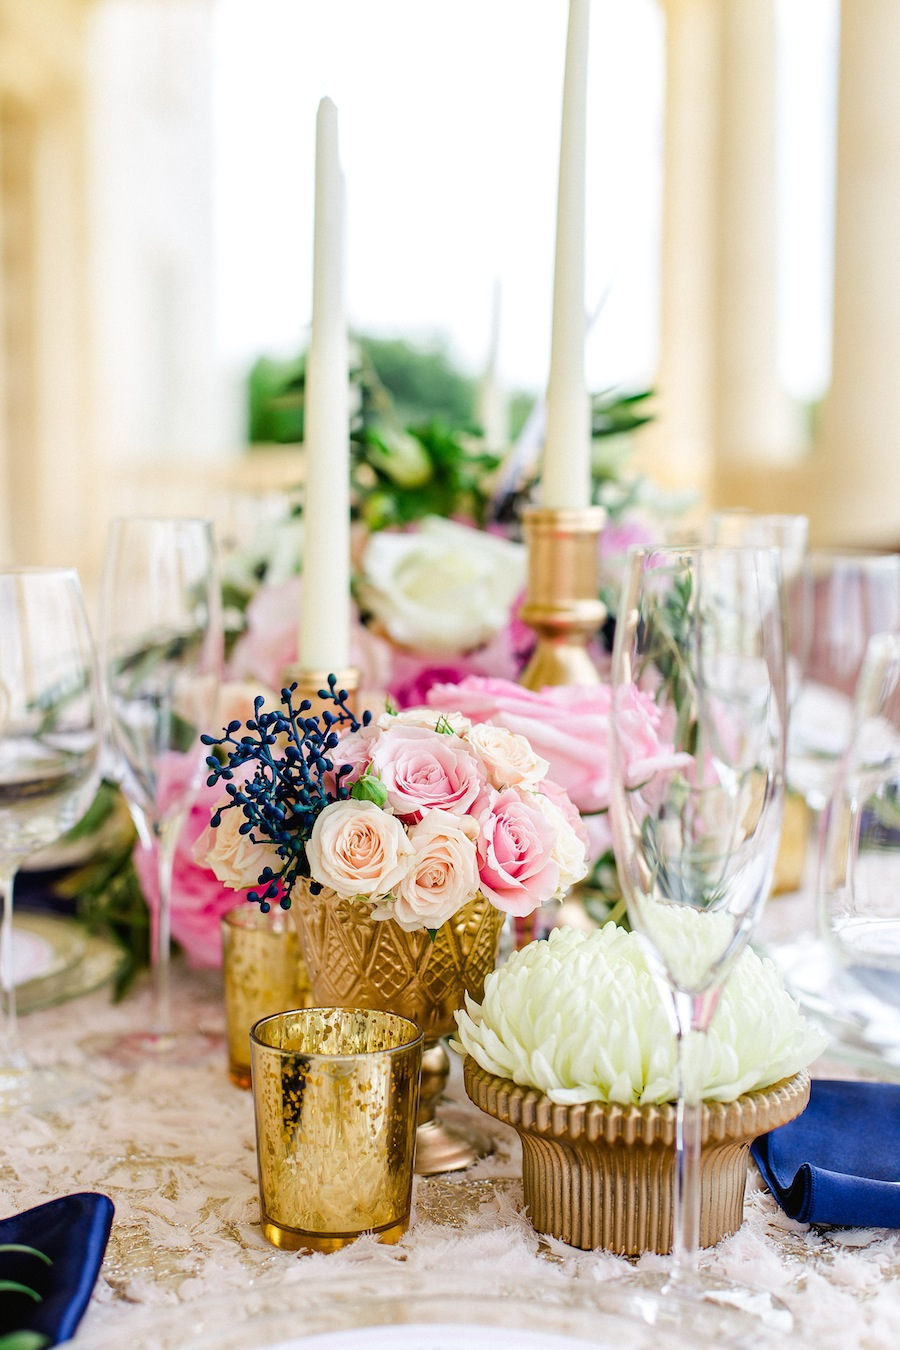 Pink Pastel Wedding Centerpieces | Tampa Bay Wedding Planner Oh So Classy Events